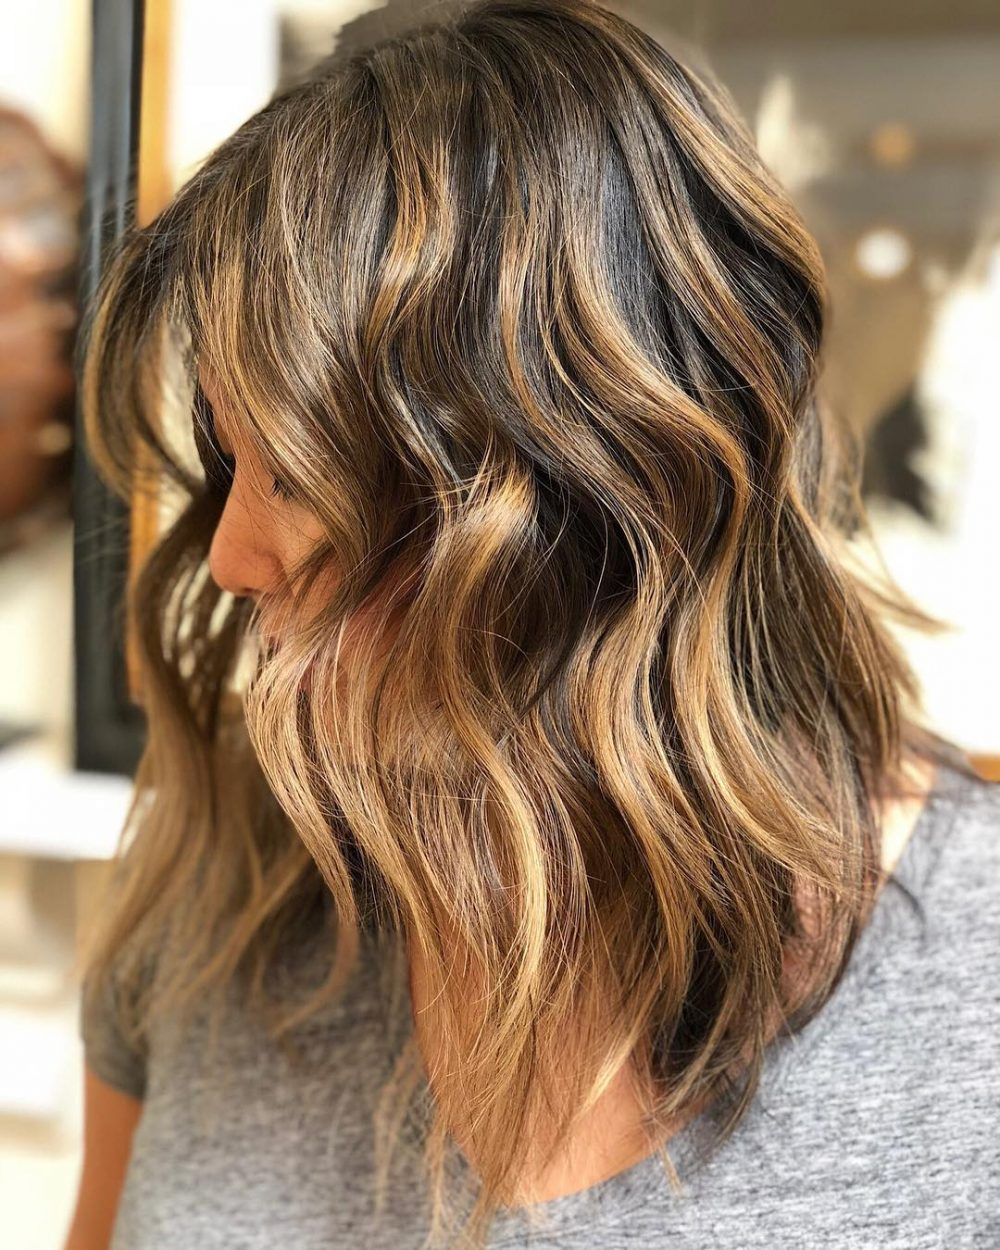 Switch Up Your Look: 41 Different Hairstyles to Try